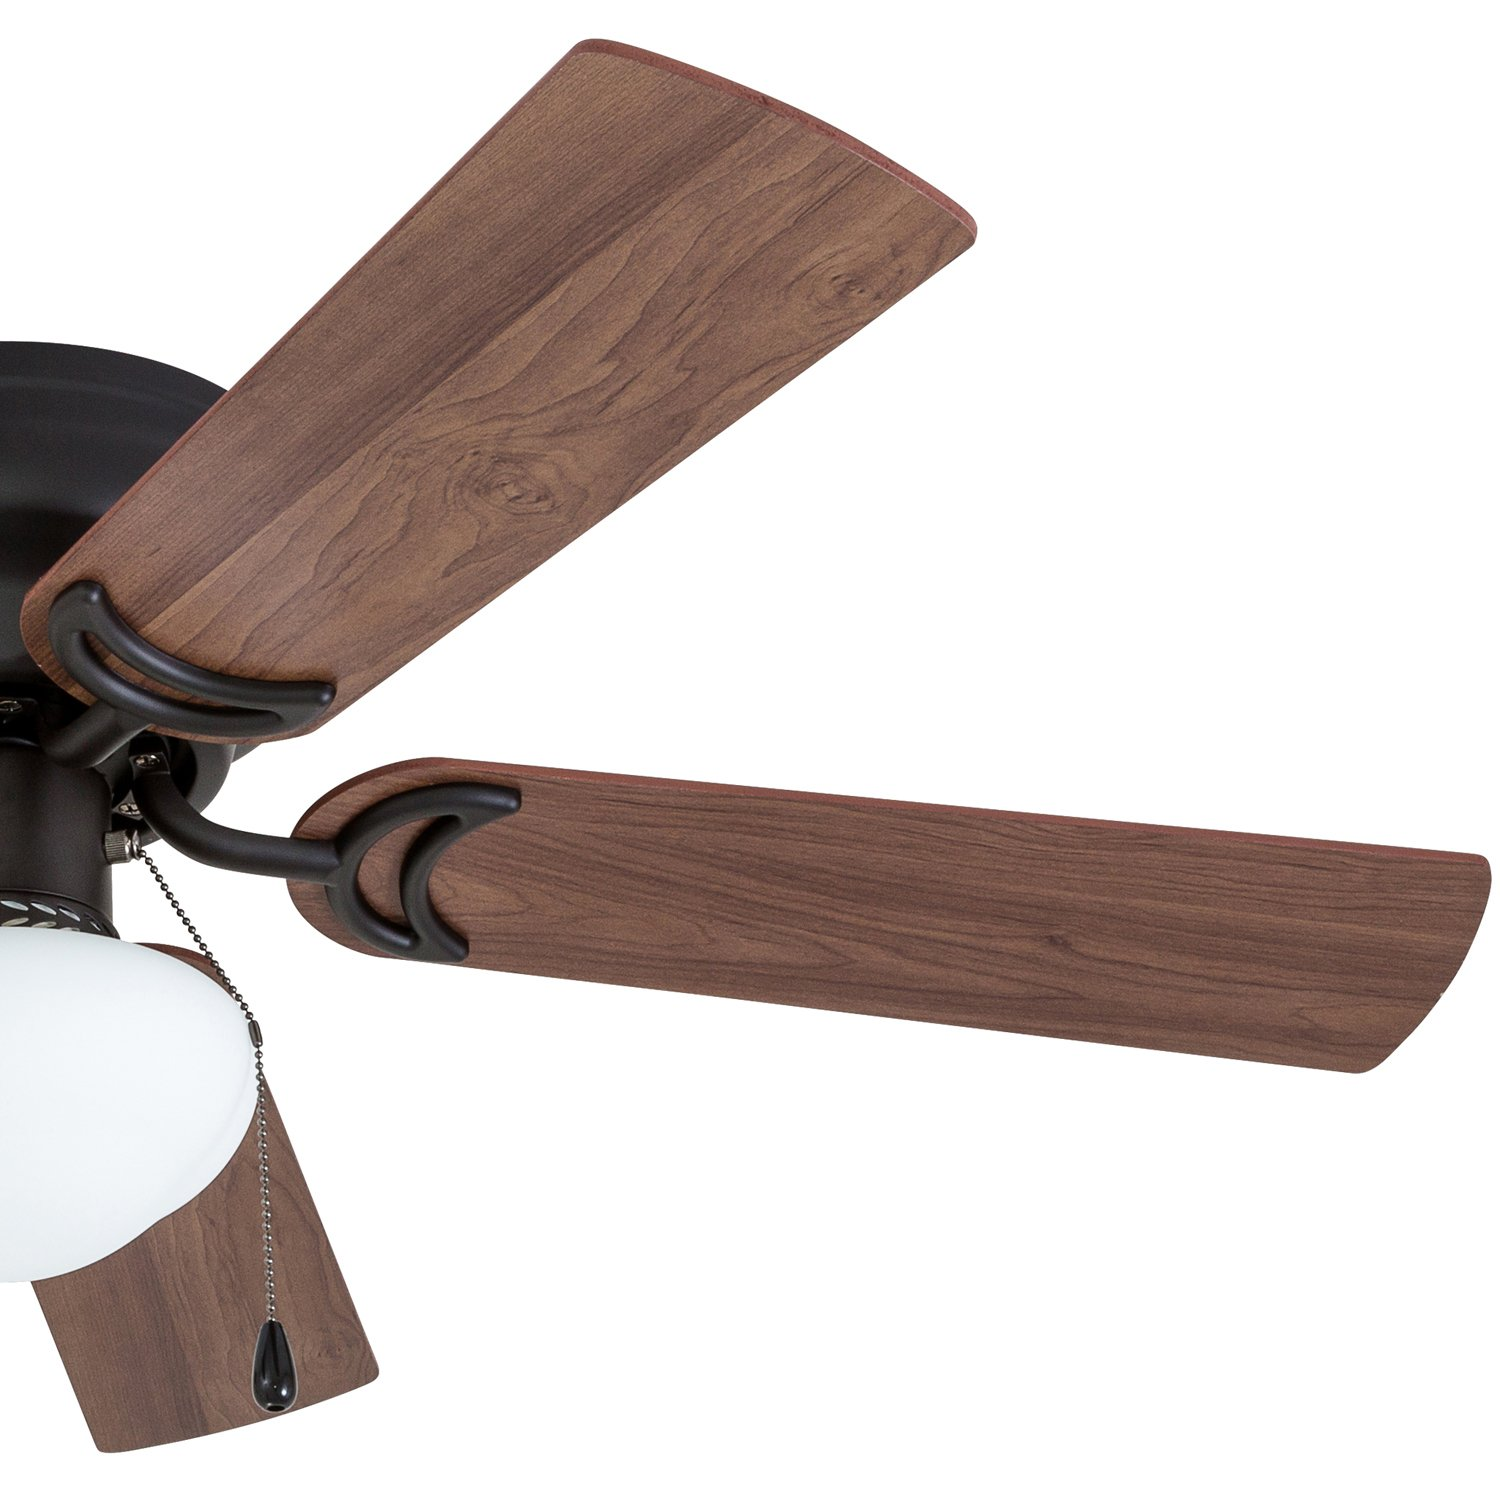 Prominence Home 50860 Alvina LED Globe Light Hugger/Low Profile Ceiling Fan, 42 inches, Bronze by Prominence Home (Image #3)